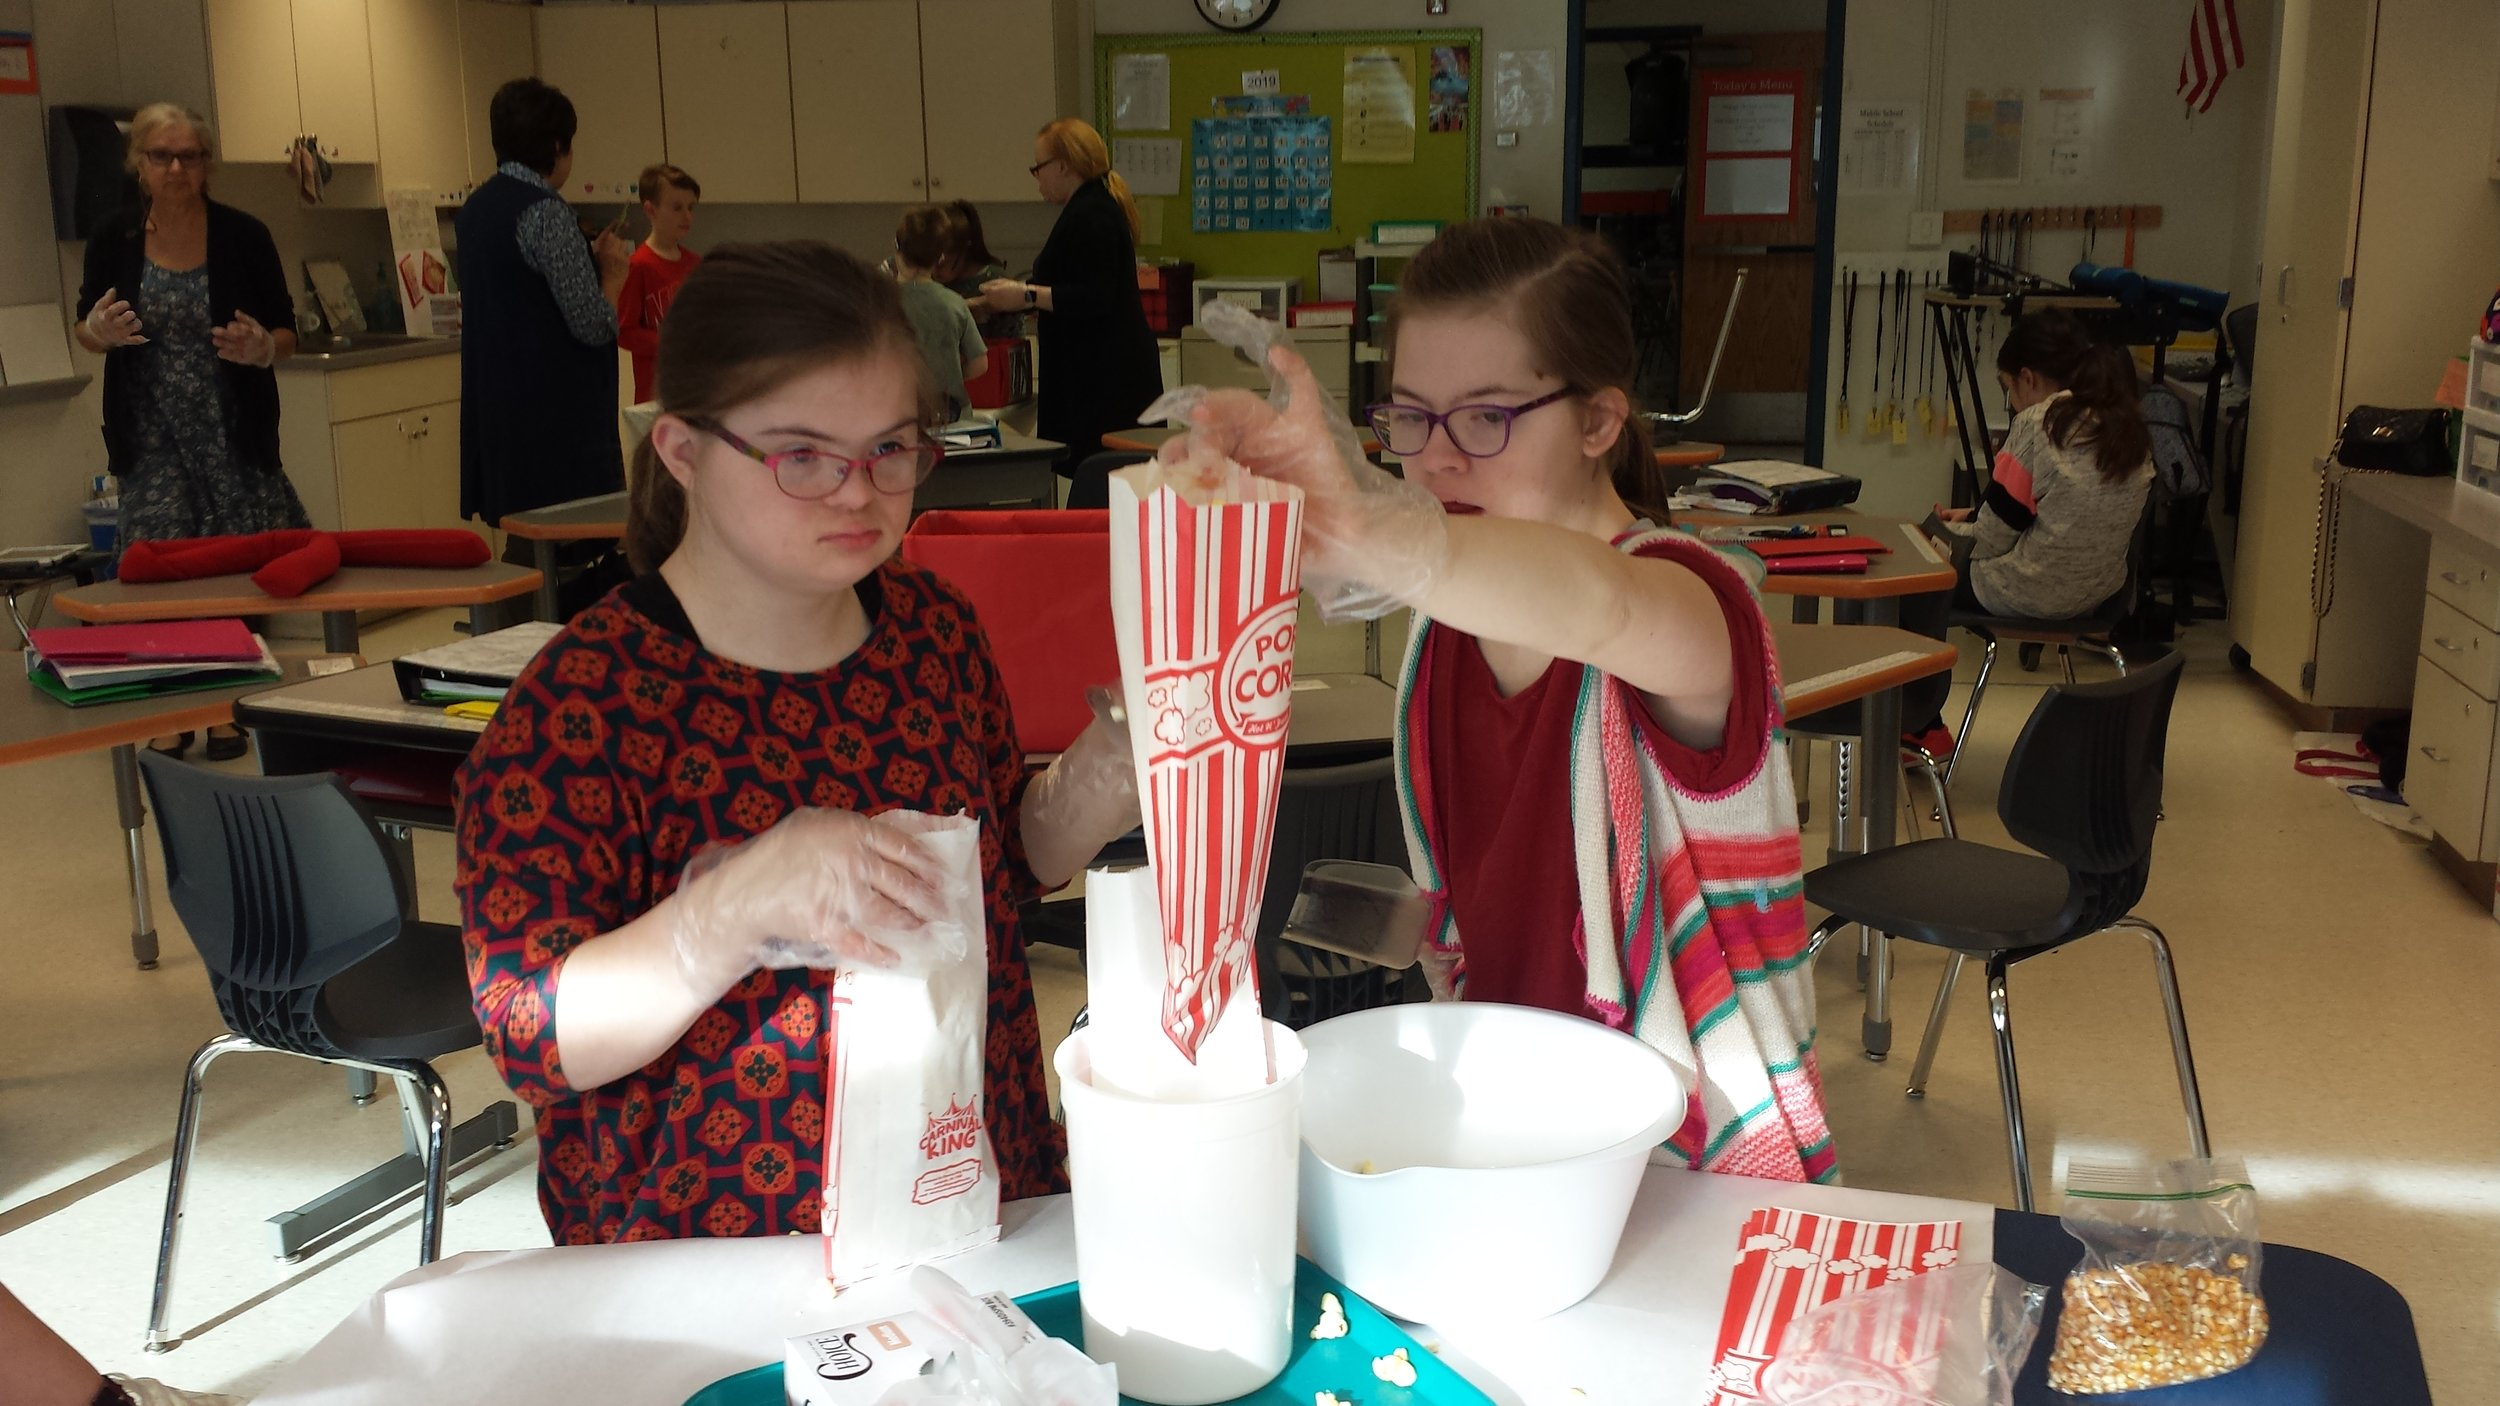 2 girls bagging popcorn approval on record.jpg